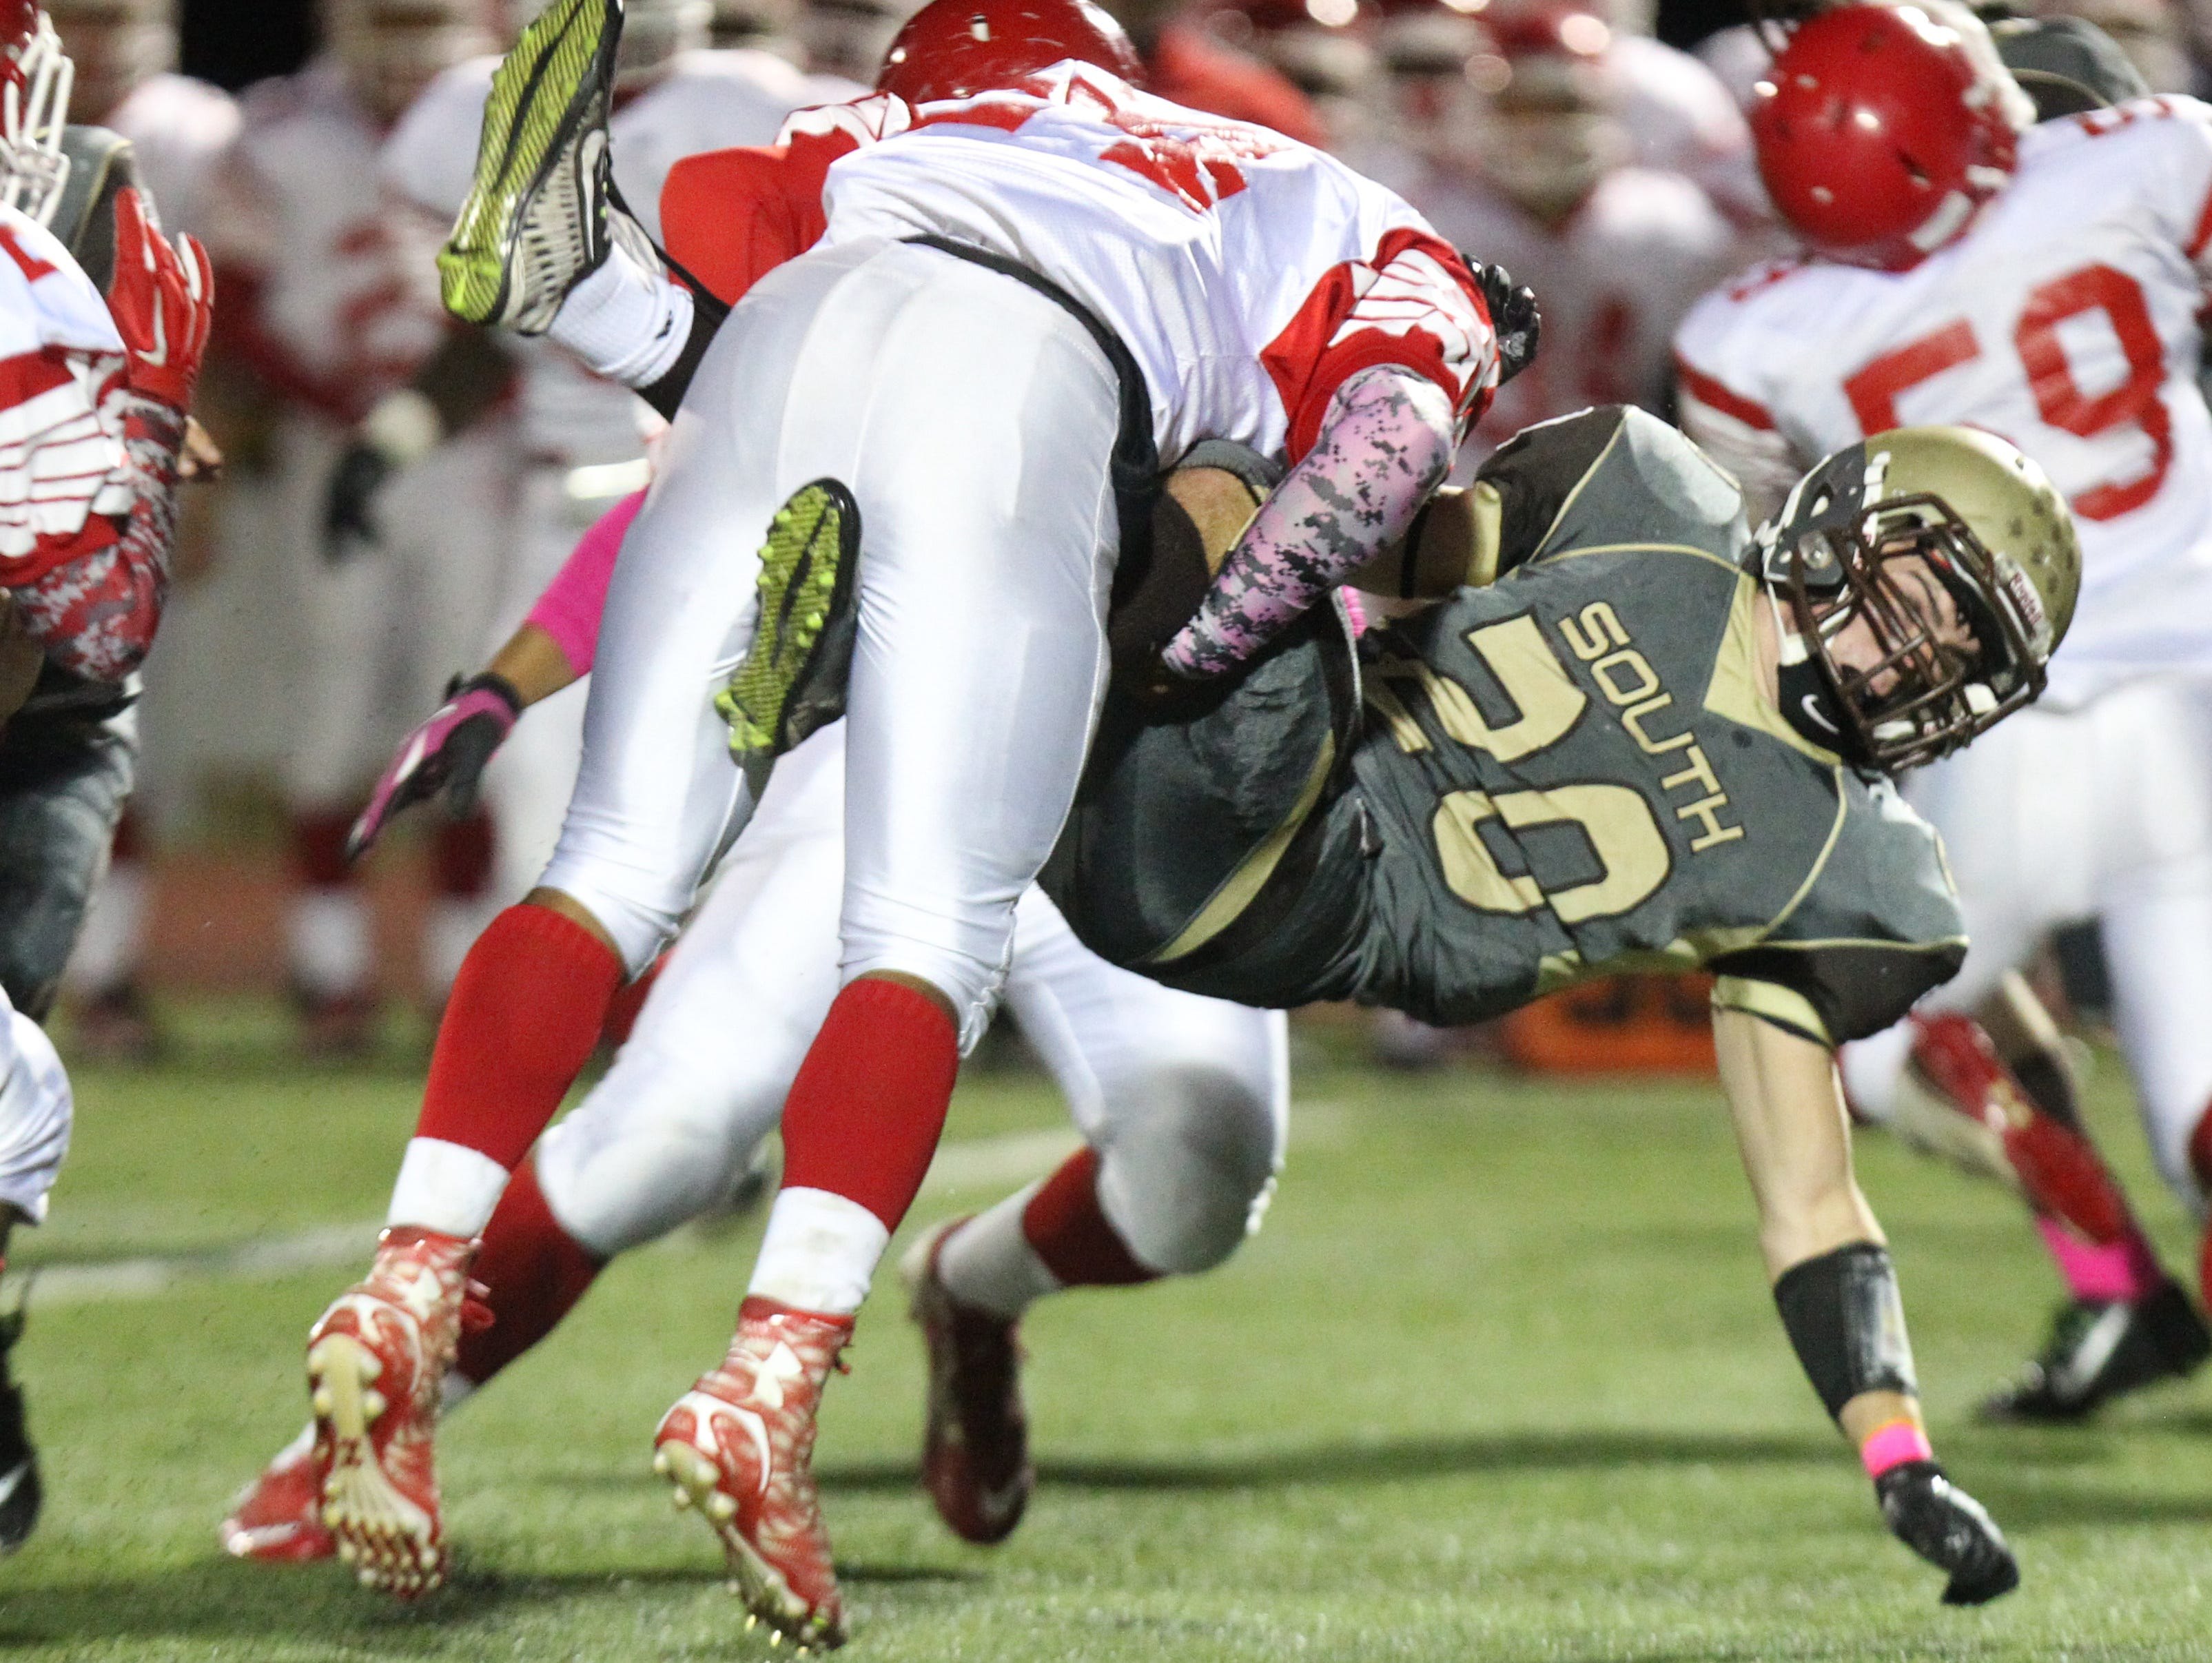 Clarkstown South's Sam Mistrella is tackled by North Rockland's Kenny Perry during their Class AA qualifying round game at Clarkstown South Oct. 16, 2015.